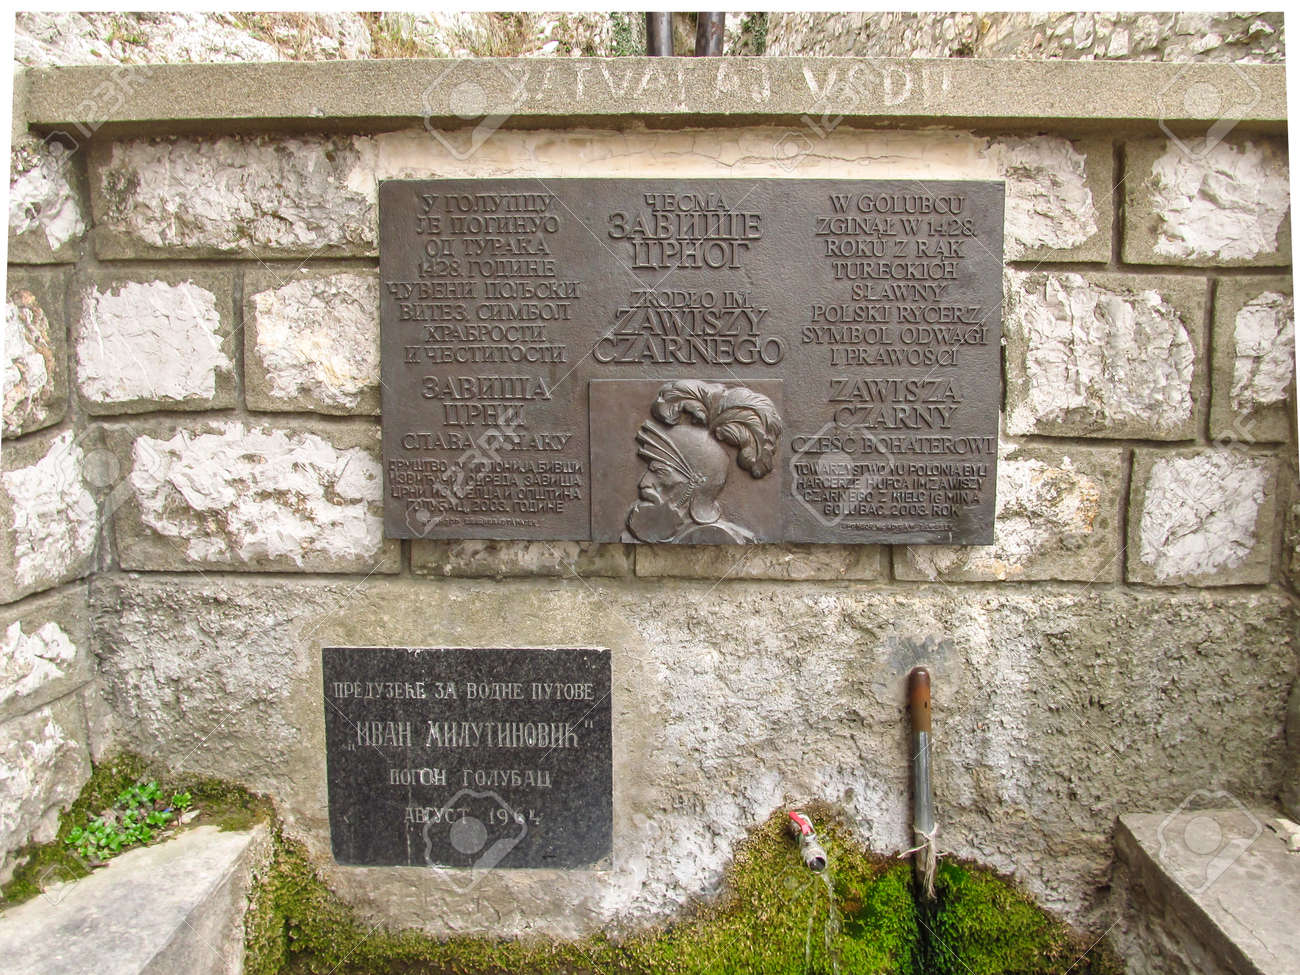 Golubac, Serbia, March 29, 2012: Ruins of castle with a commemorative plaque in the place where Zawisza Czarny, a famous Polish knight, symbol of courage and righteousness killed by the Turks in 1428 - 157892595